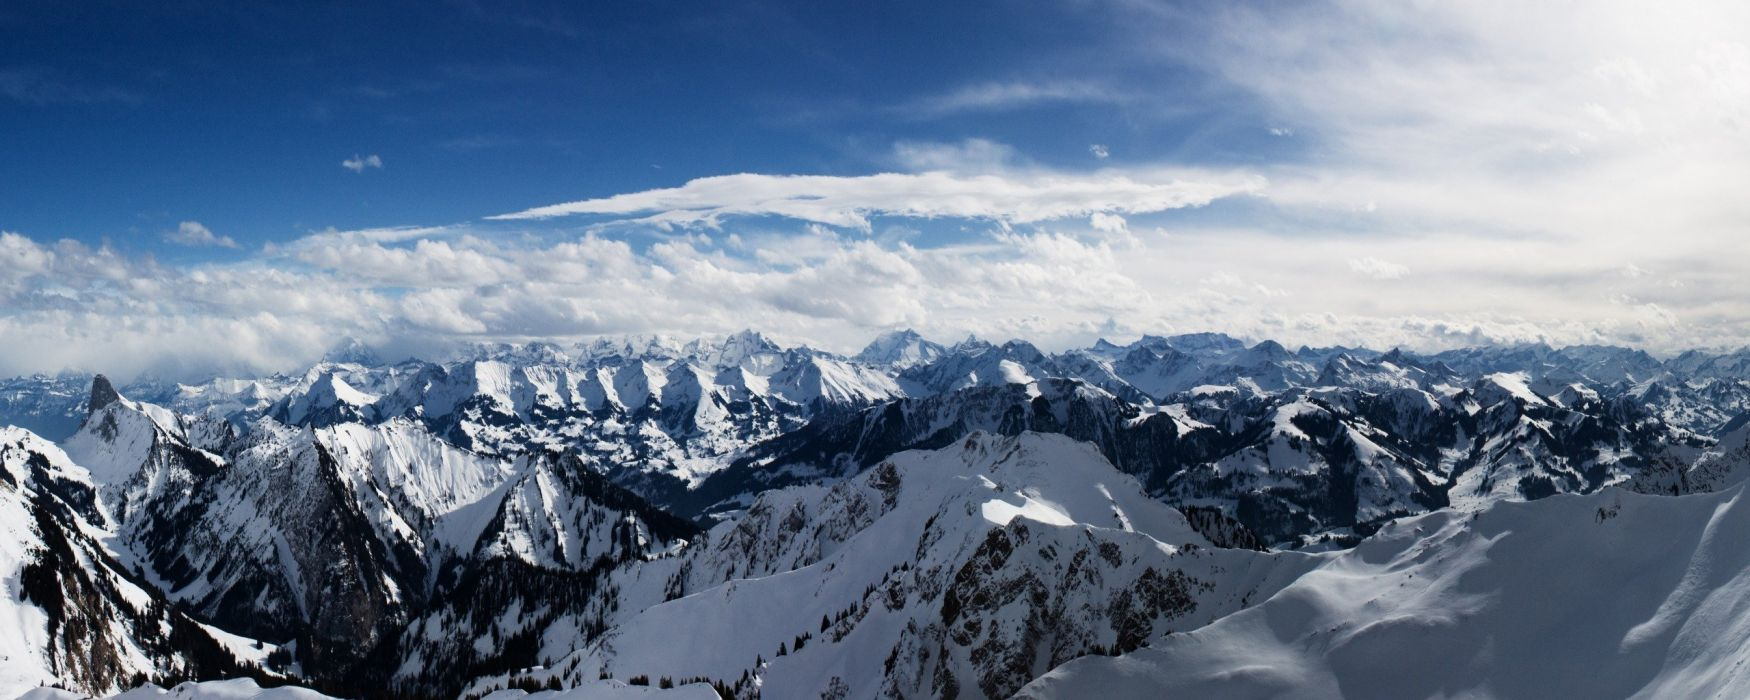 alps mountains dual monitor-other wallpaper